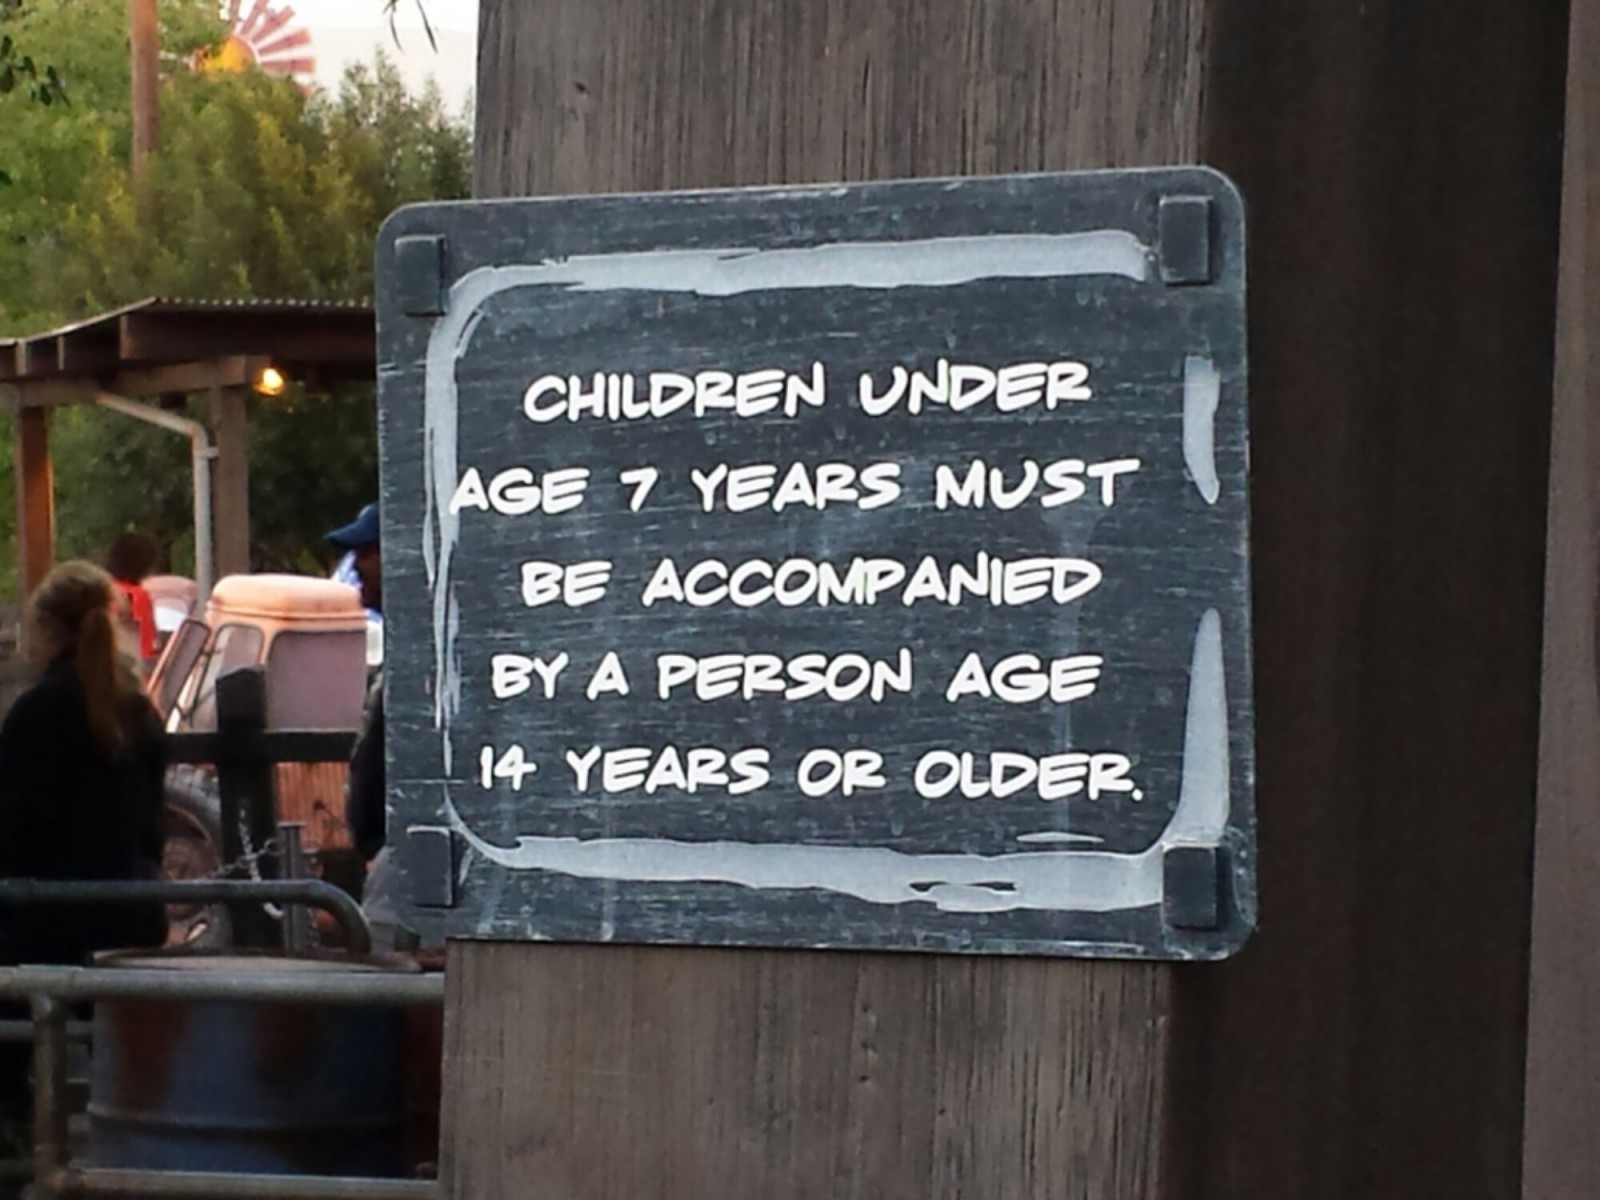 A new sign by Maters?  Stating the policy that anyone under age 7 needs to be accompanied by someone 14+